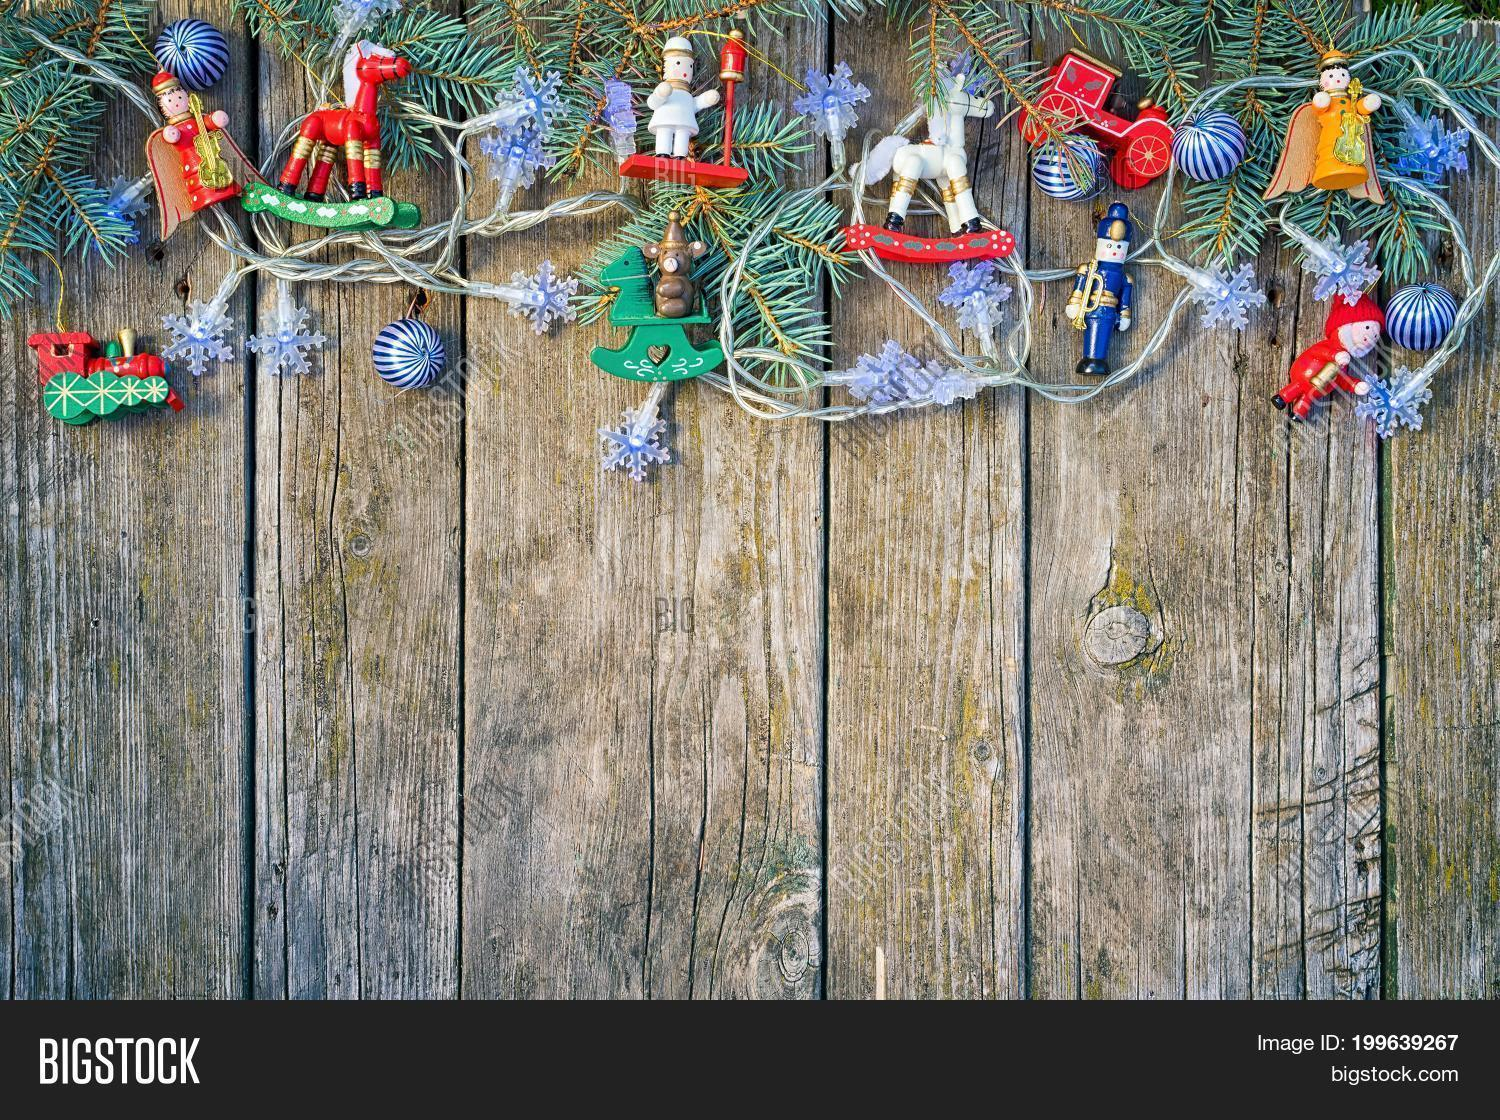 Christmas Border Frame Image Photo Free Trial Bigstock